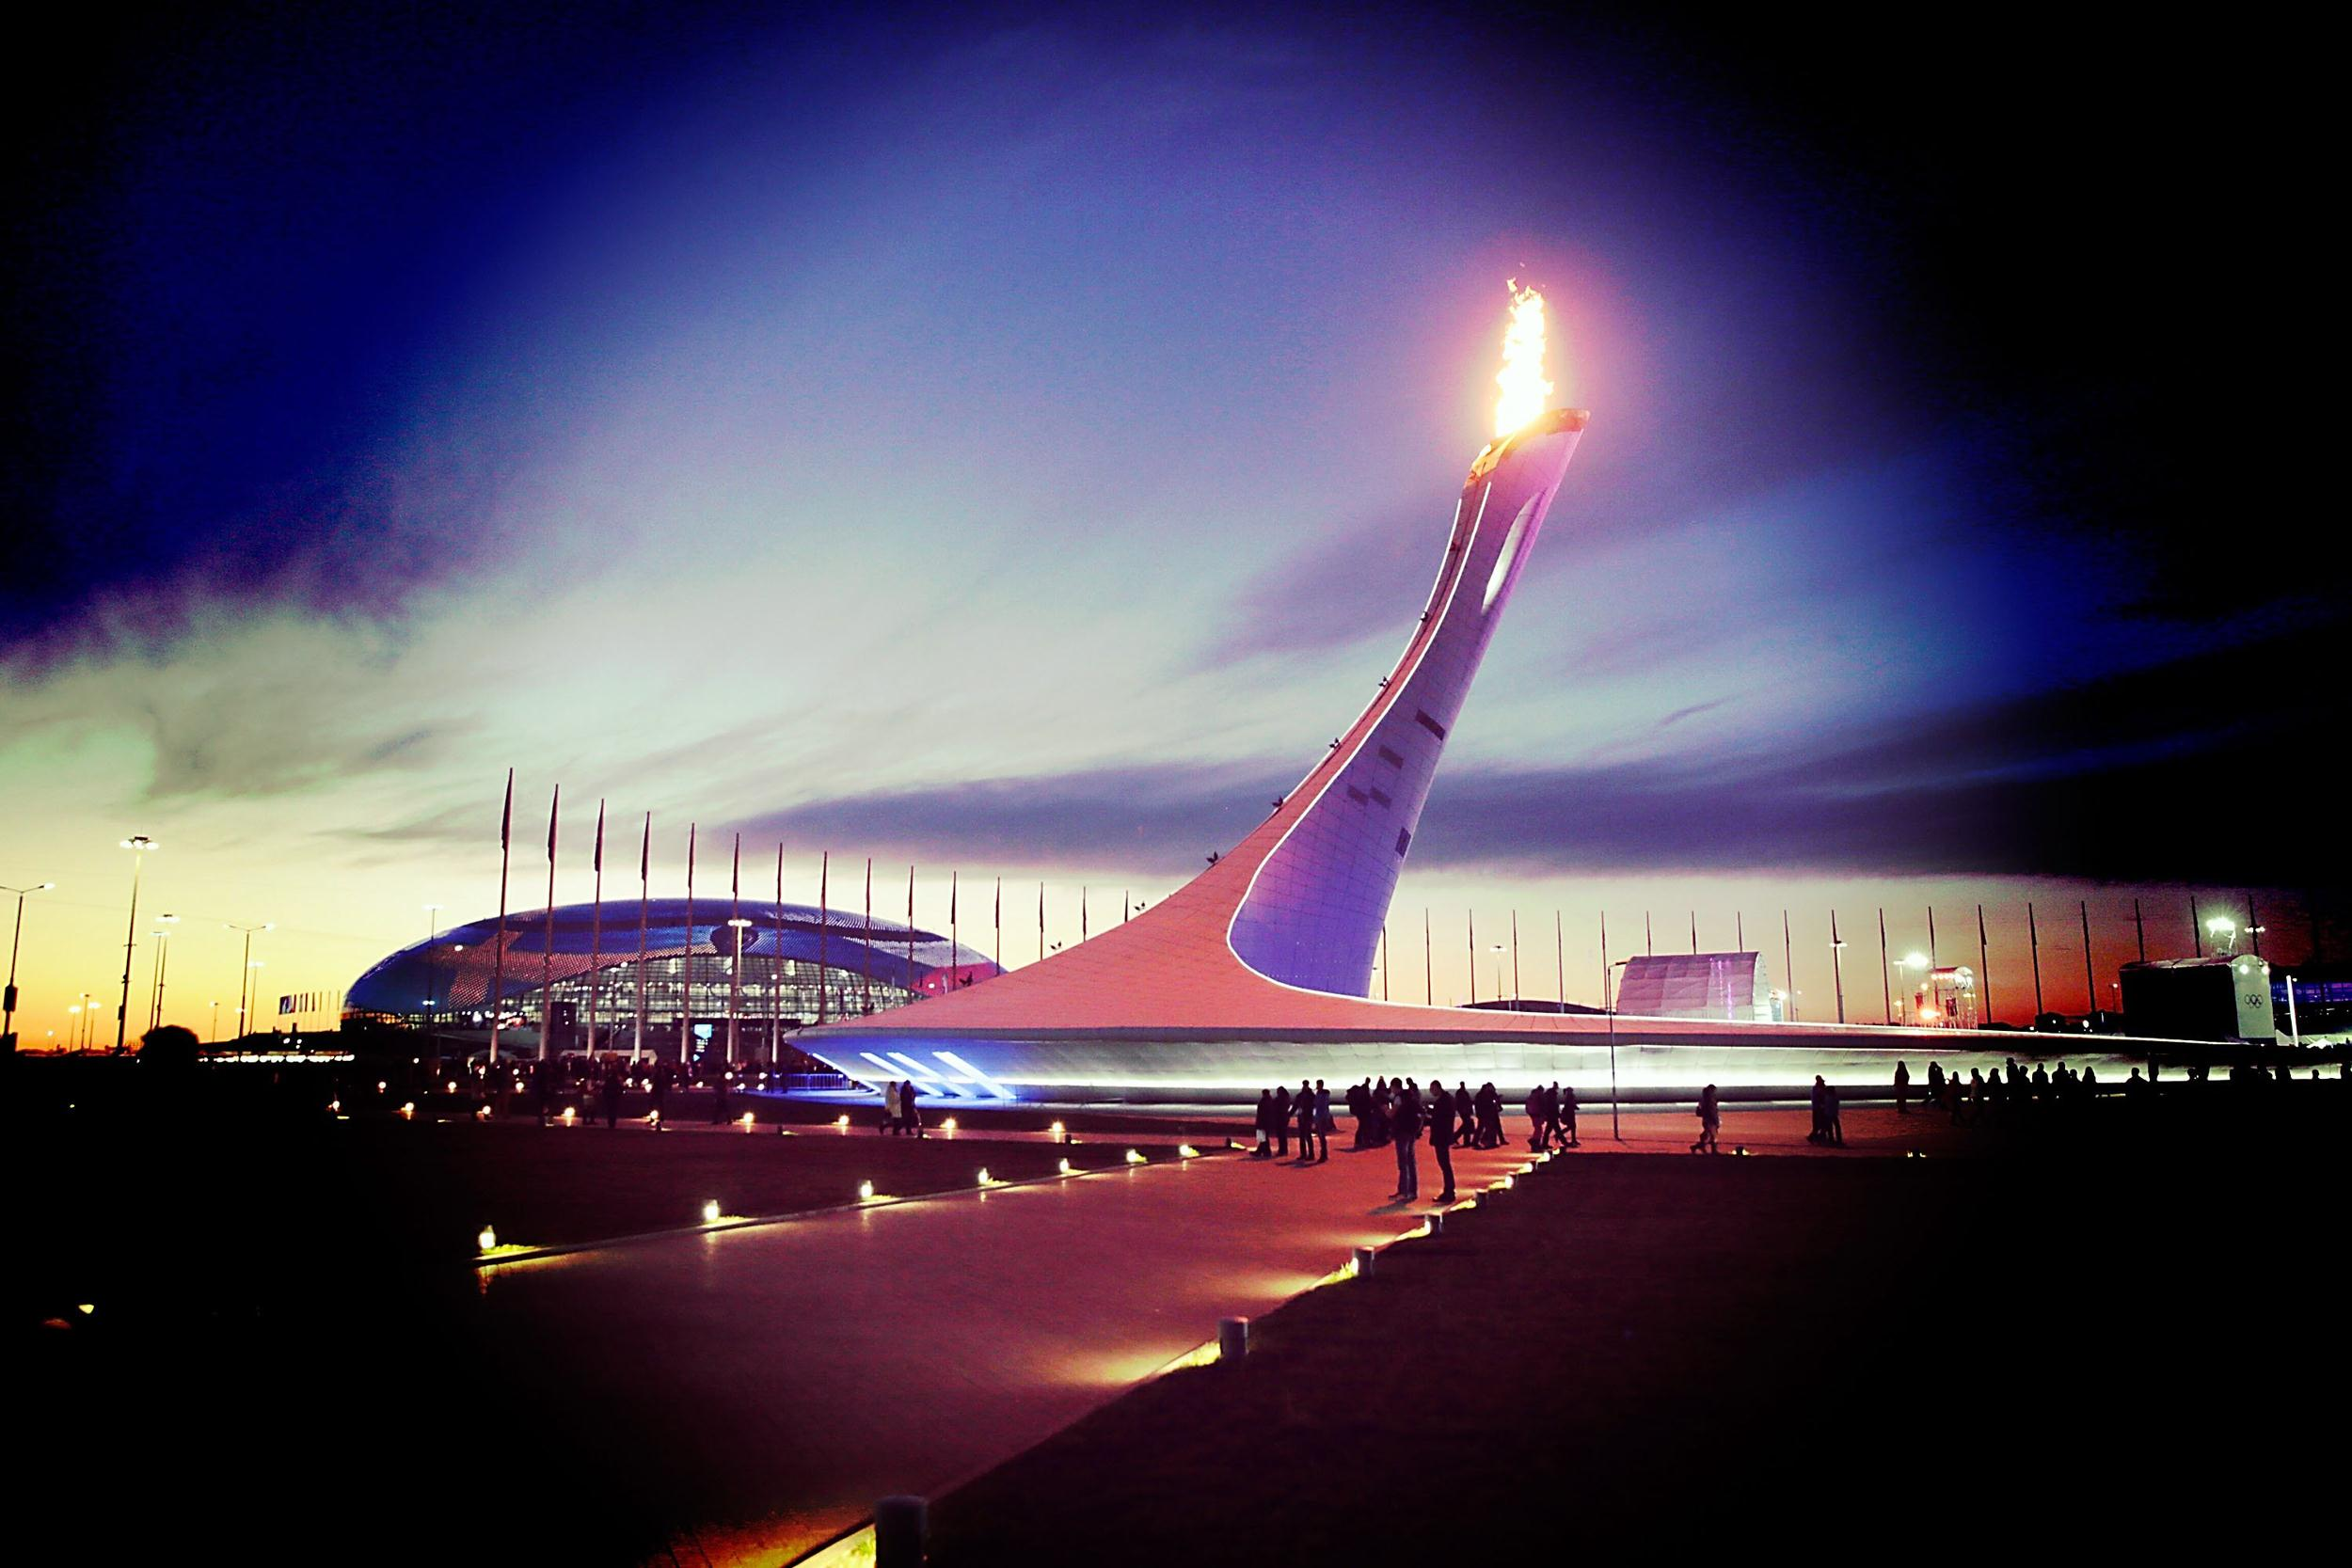 Image: A view of the Olympic Cauldron at sunset in the Olympic Park on Feb. 12 in Sochi, Russia. Editor's note: This image was processed using digital filters)